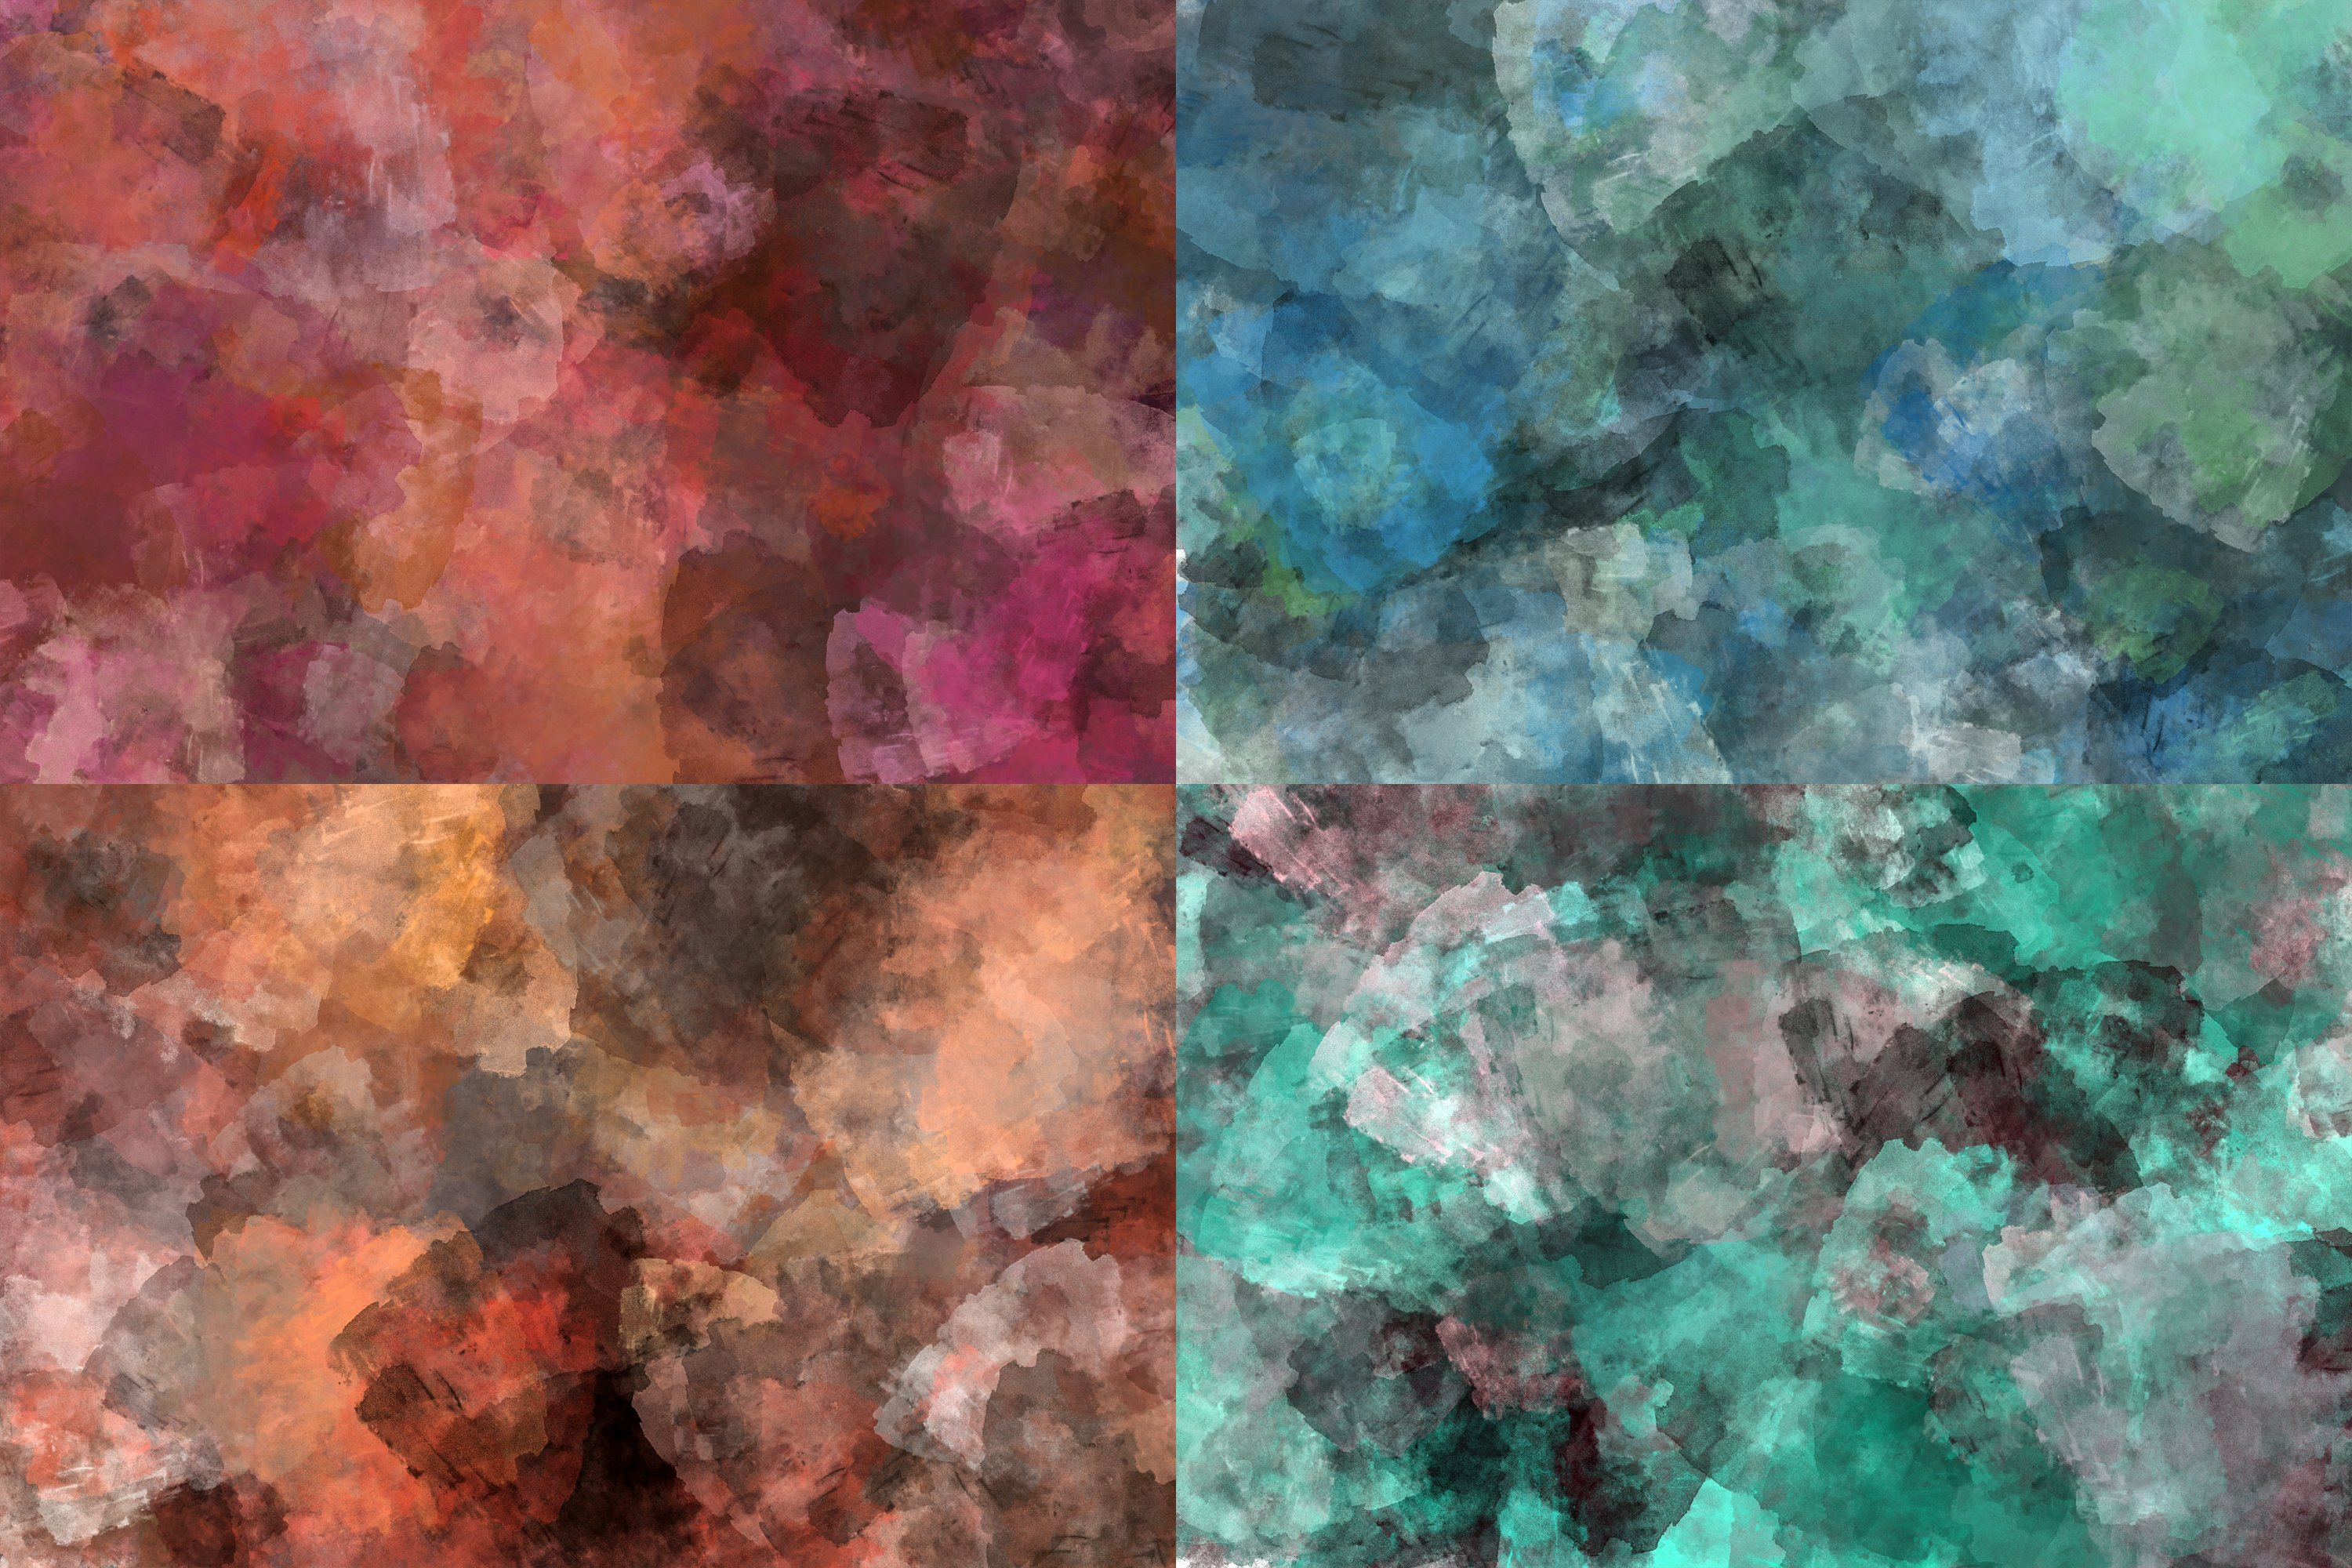 10 Grunge Watercolor Washes Textures example image 5